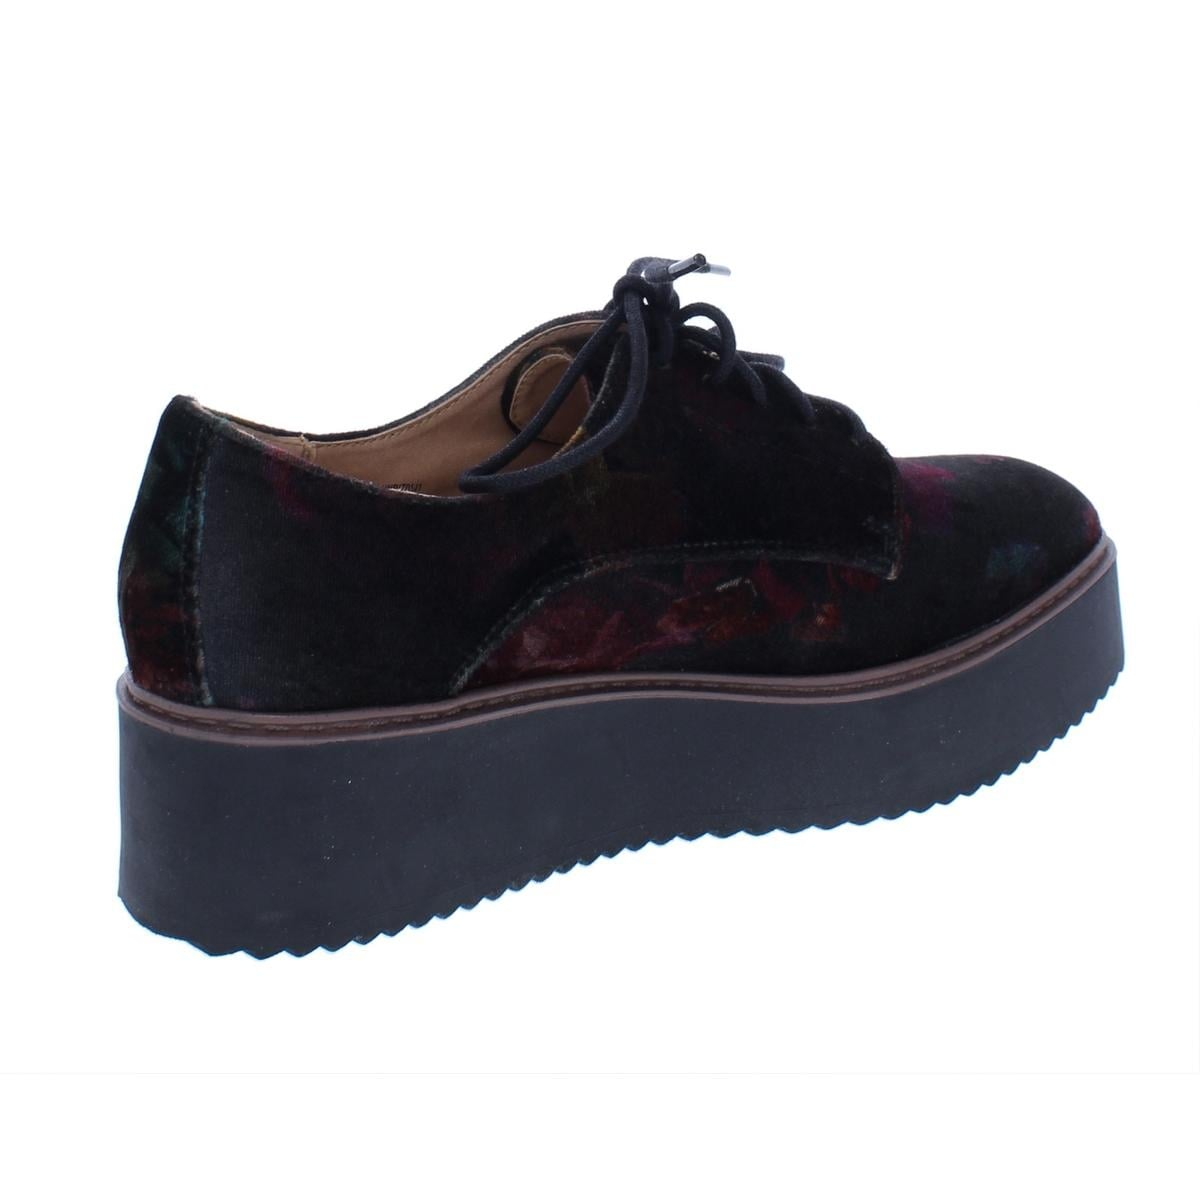 93980edfc5c0 Shop Madden Girl Womens Written Oxfords Platform - Free Shipping On Orders  Over  45 - Overstock - 24030962